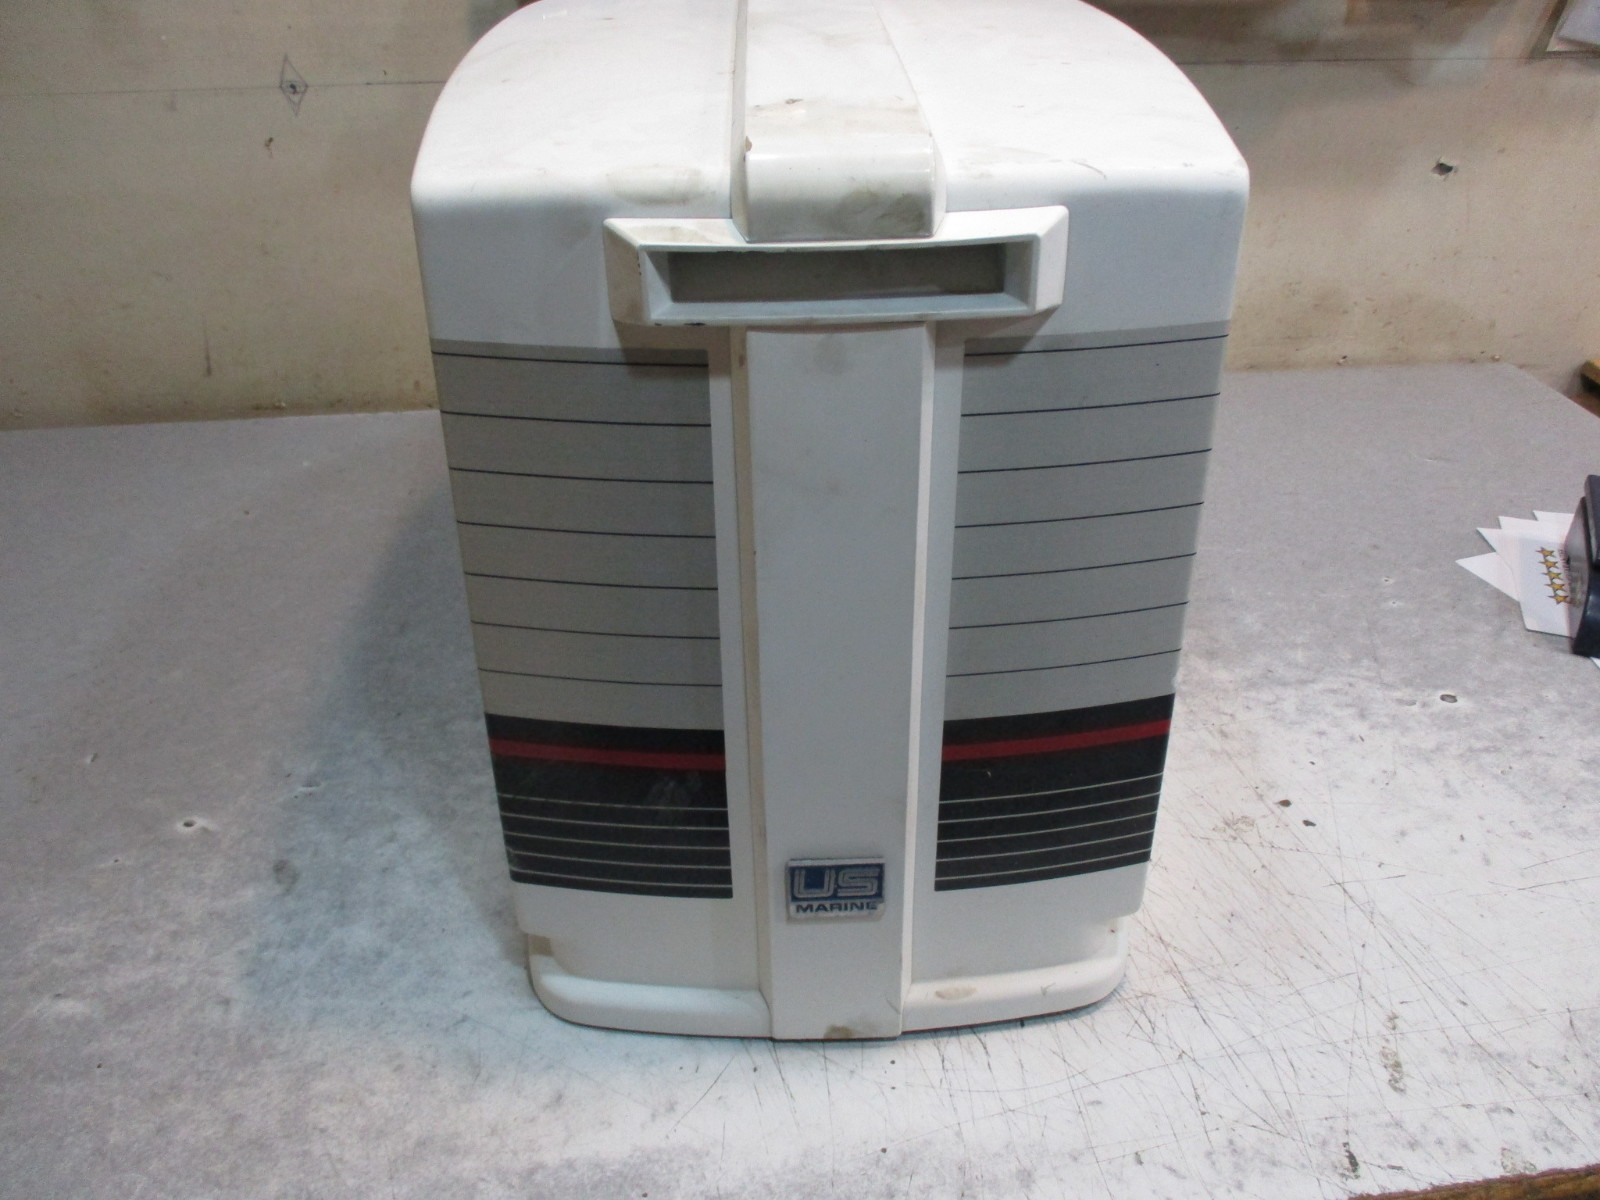 Boat cowling 1985 125 hp force outboard cover top hood cap for 125 hp force outboard motor for sale